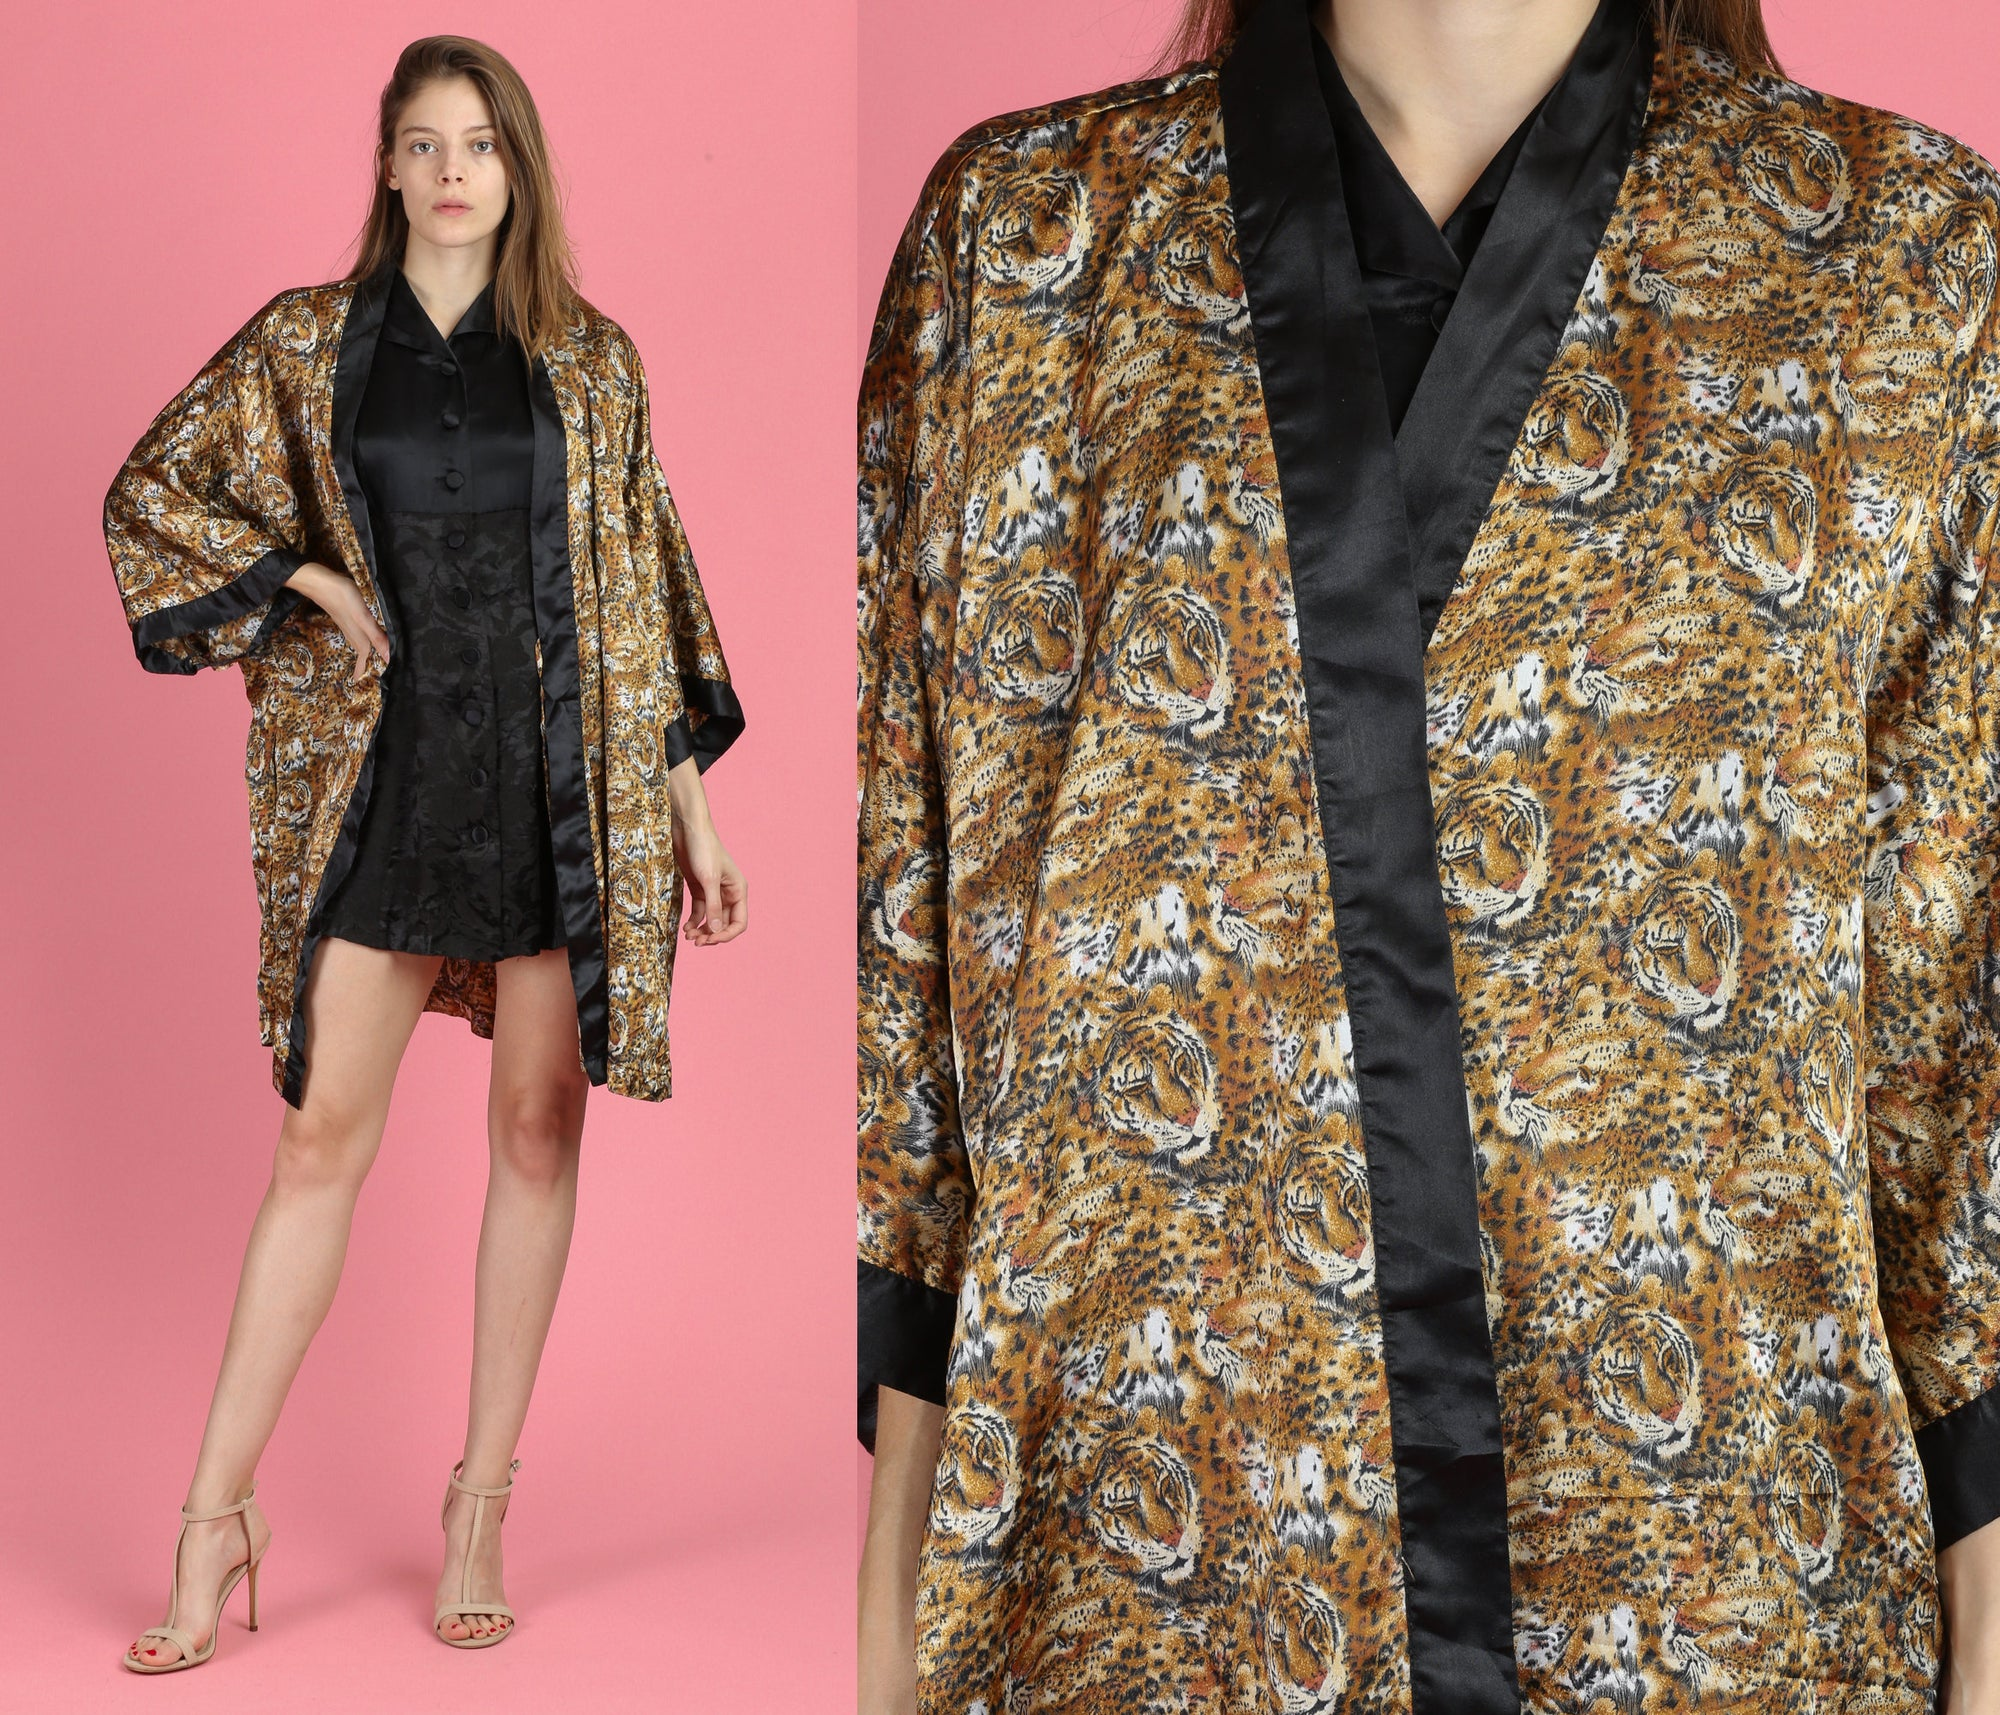 90s Tiger Print Satin Mini Robe - One Size